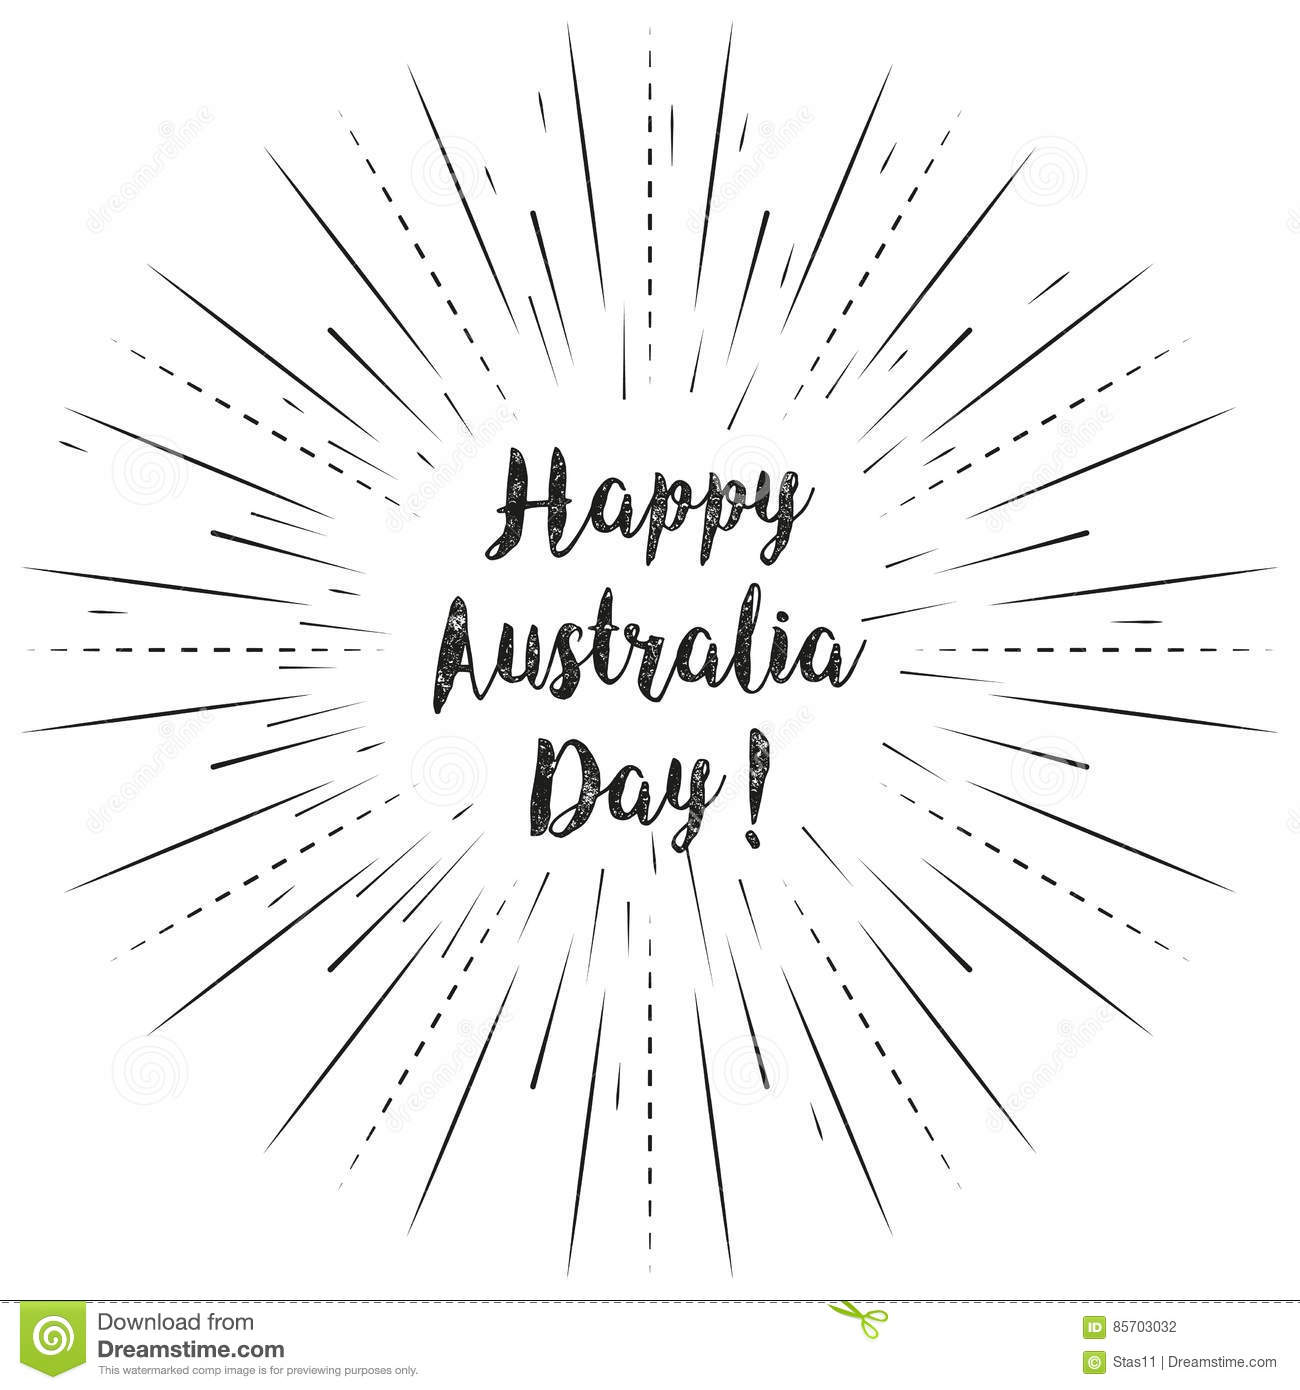 Happy Australia Day text with sun rays linear background. Vector card design with custom calligraphy